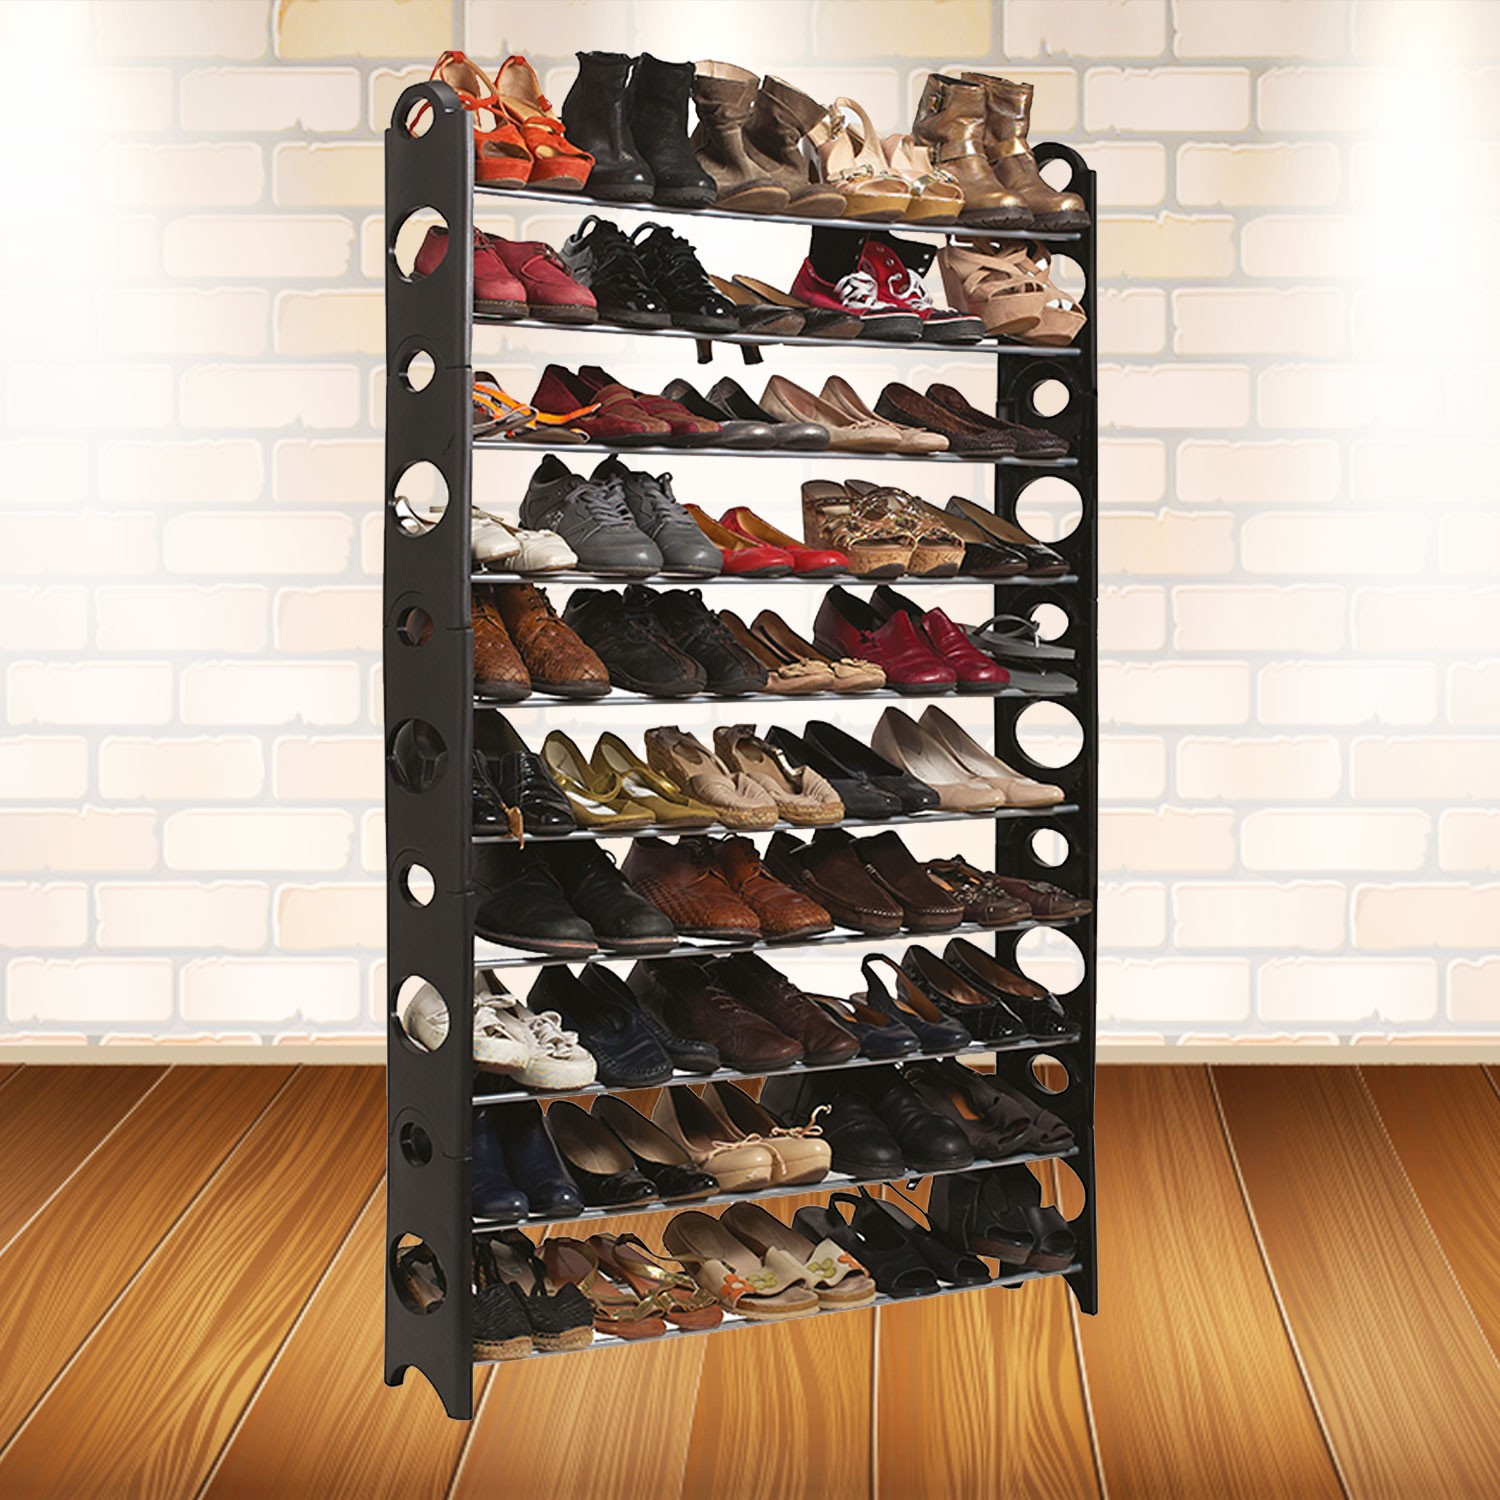 etagere a chaussure fait maison etagere a chaussure fait maison love my shoe rack pallet. Black Bedroom Furniture Sets. Home Design Ideas